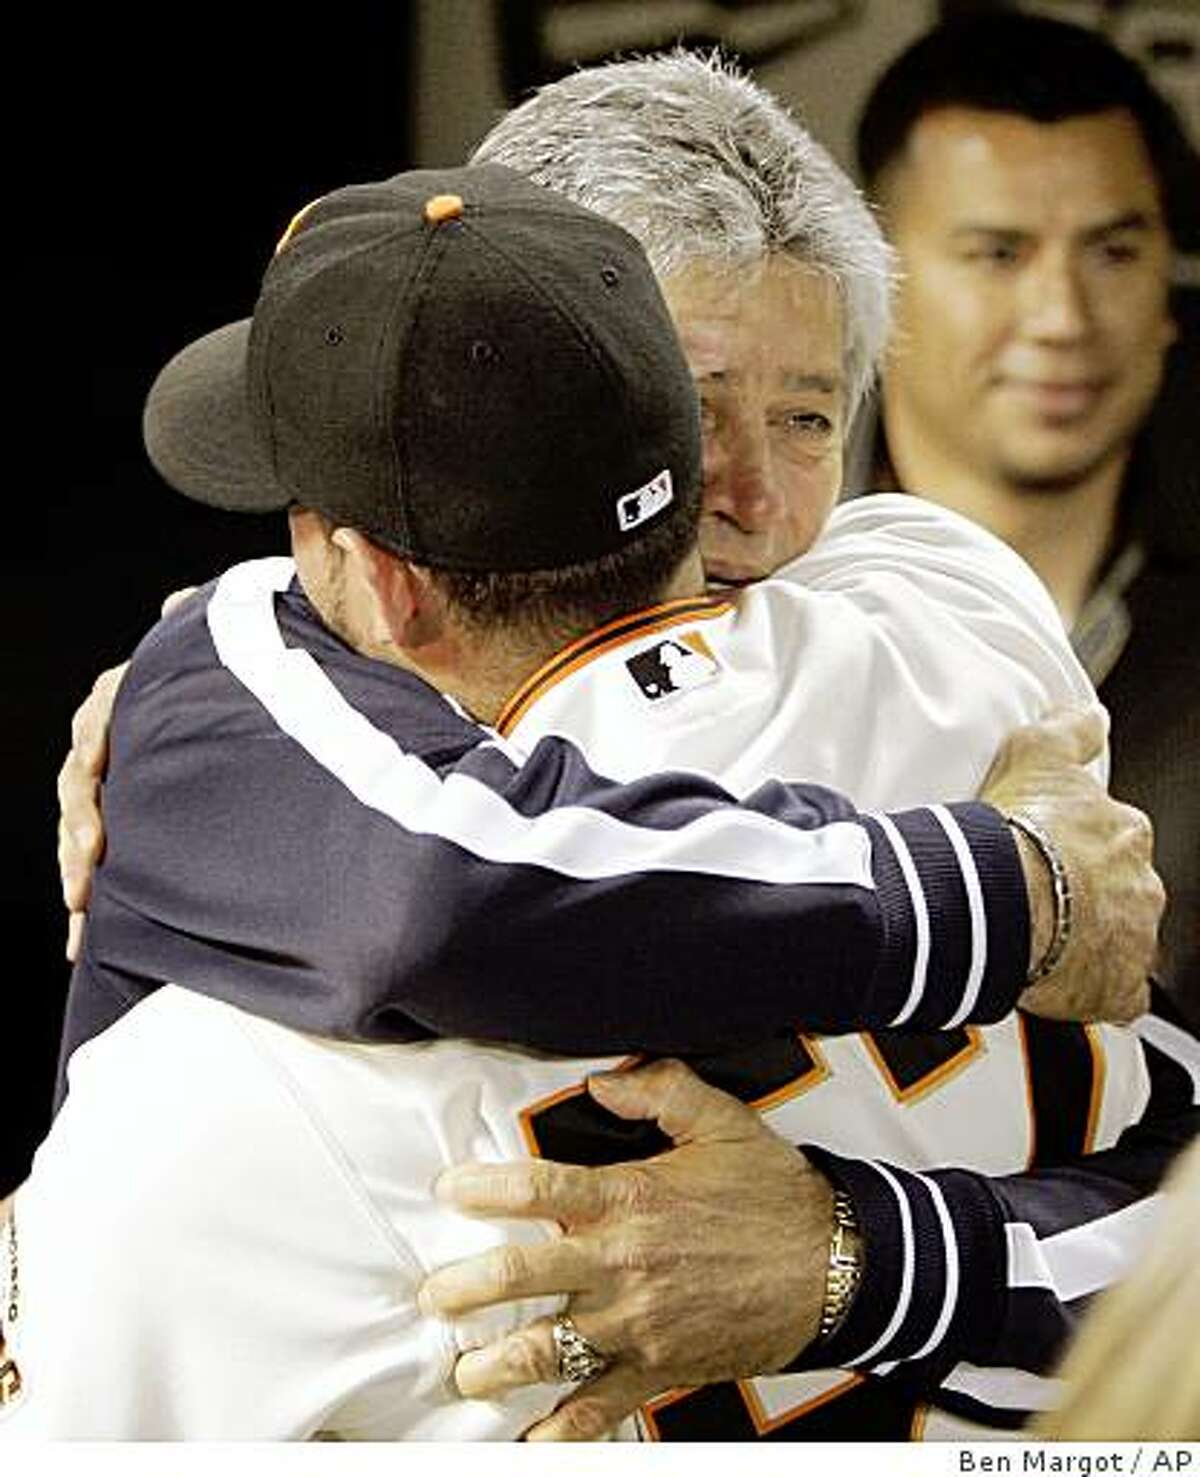 """San Francisco Giants' Jonathan Sanchez, left, is embraced by his father, Sigfredo Sanchez, at the end of a baseball game after pitching a no-hitter against the San Diego Padres Friday, July 10, 2009, in San Francisco. Sanchez said his father arrived in San Francisco the previous night. """"This is the first time he has seen me pitch. This is a gift for him,"""" said Sanchez, """"I feel awesome."""" (AP Photo/Ben Margot)"""